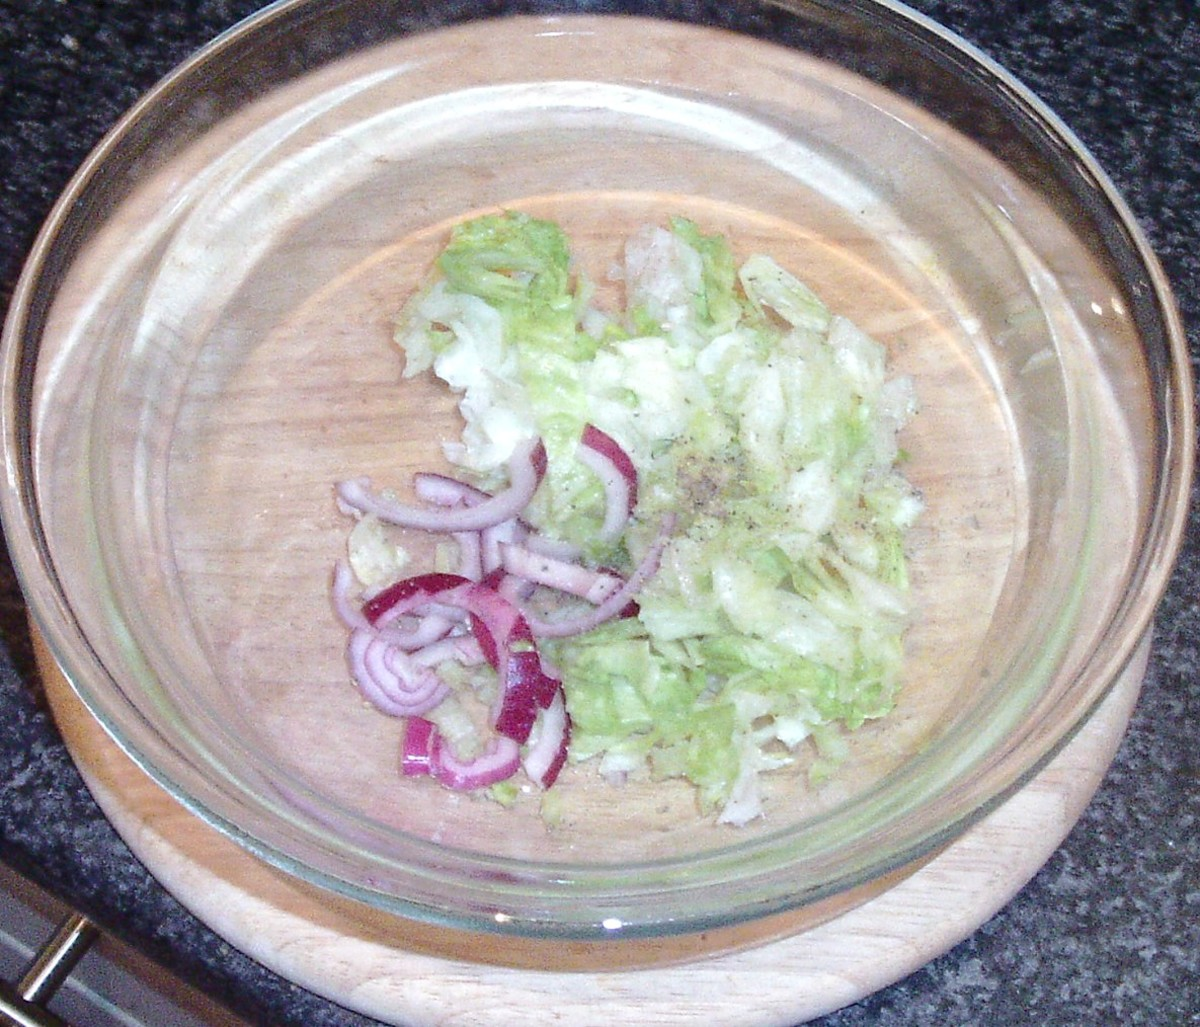 Lettuce and onion is seasoned and tossed to combine